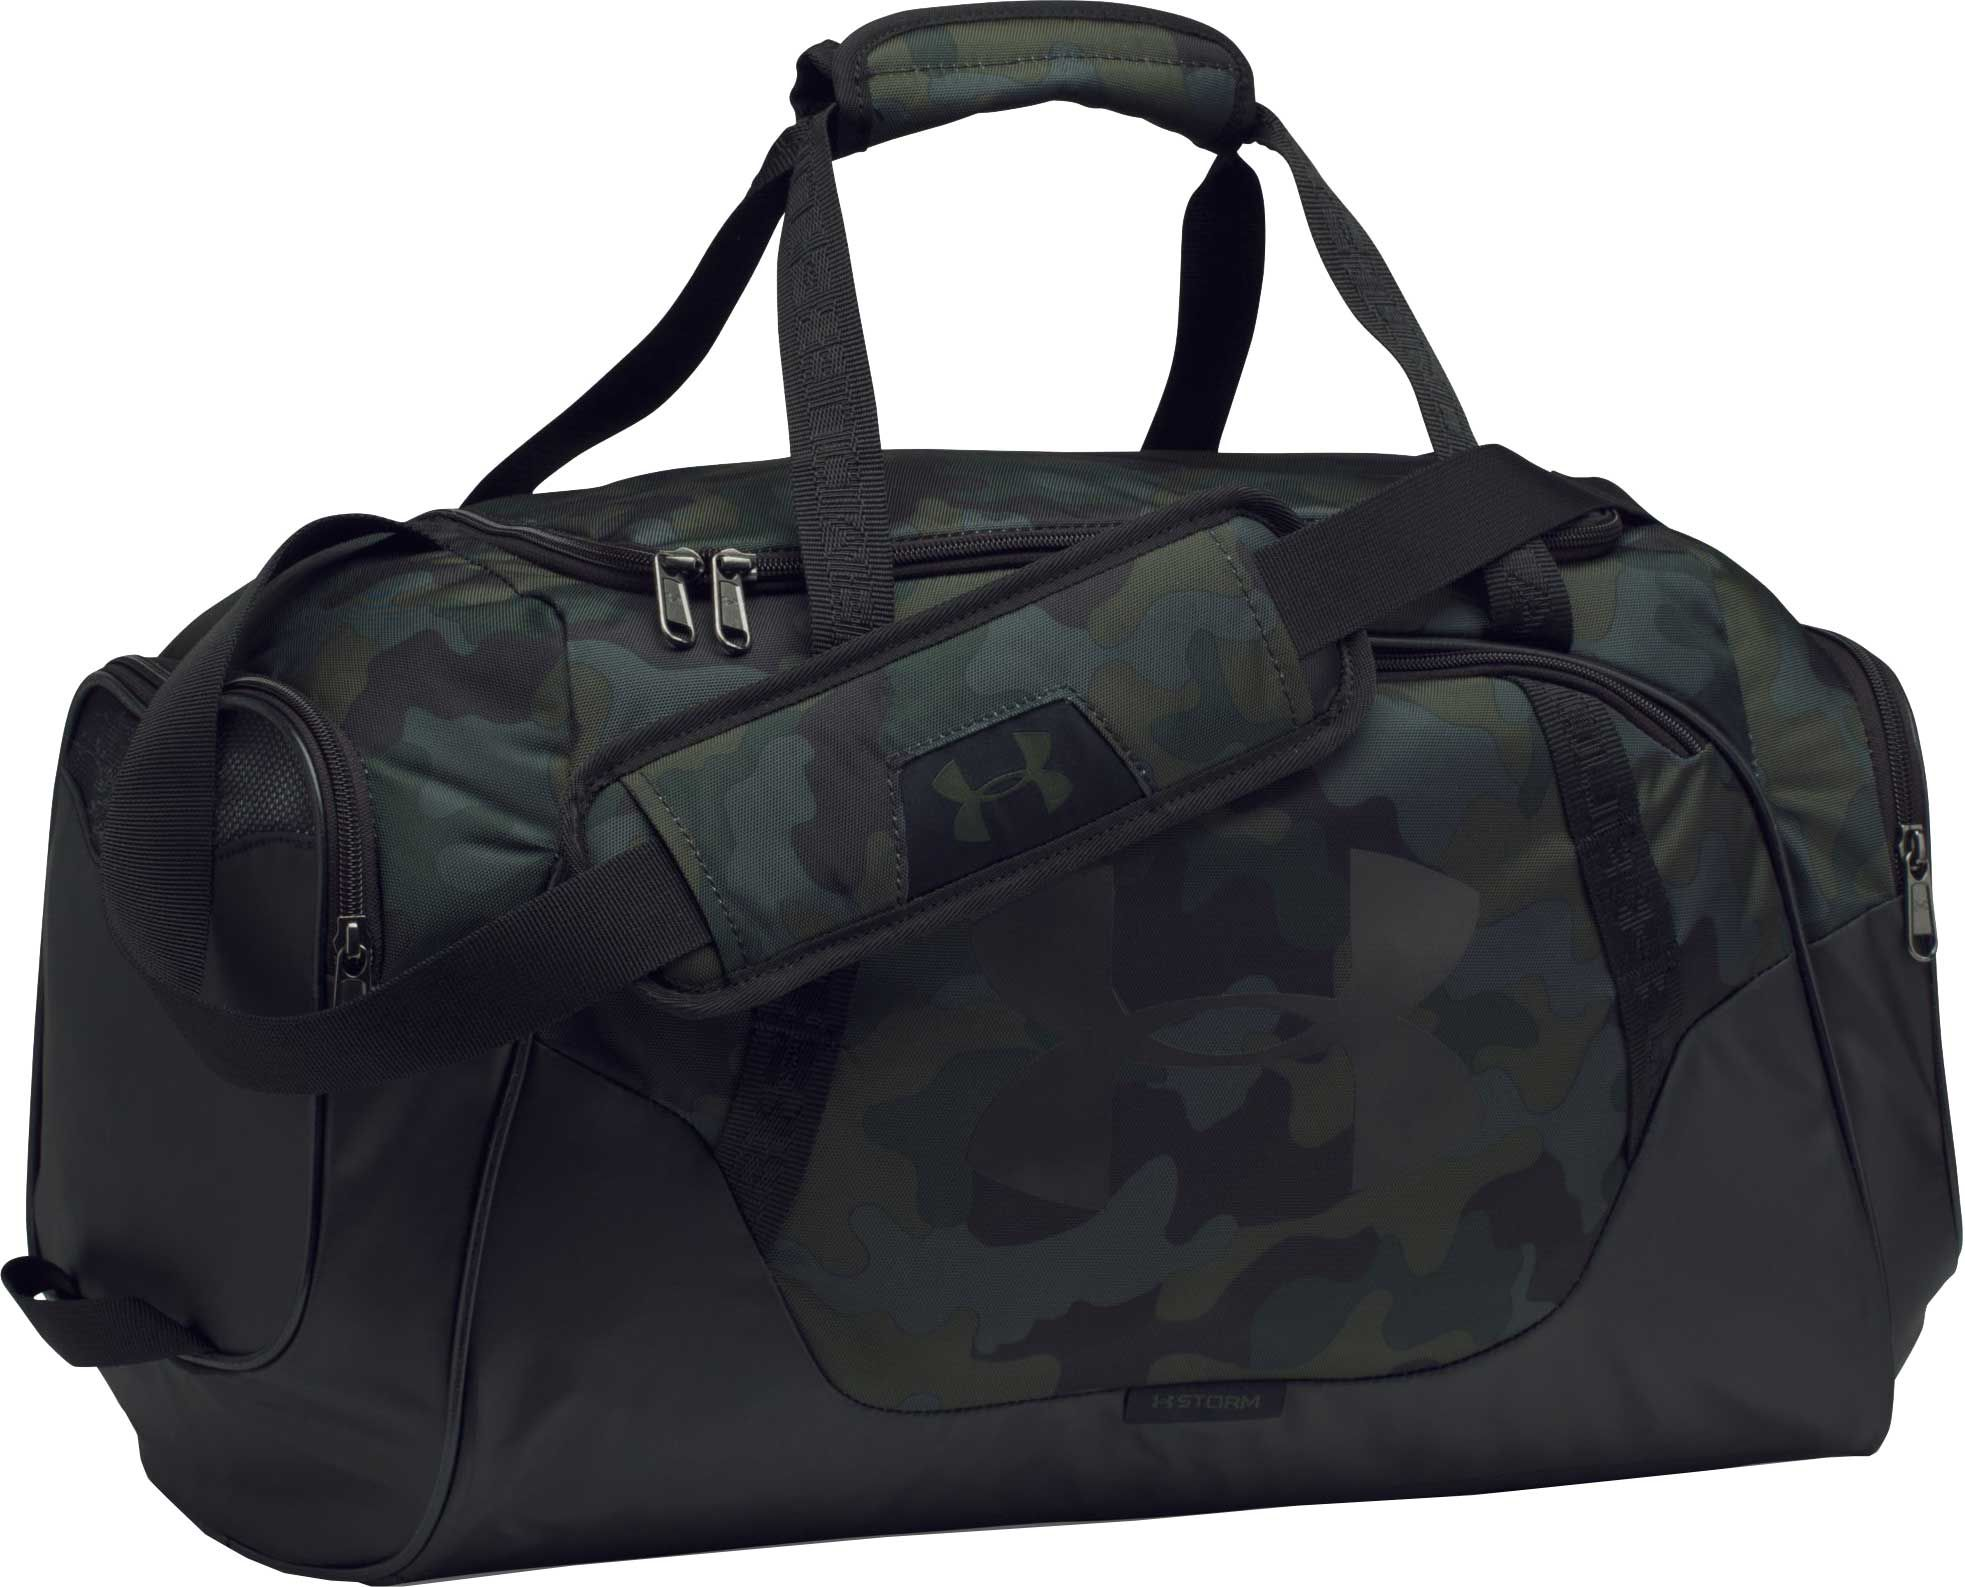 355b730d126 Under Armour Undeniable 3.0 Small Duffle Bag | DICK'S Sporting ...